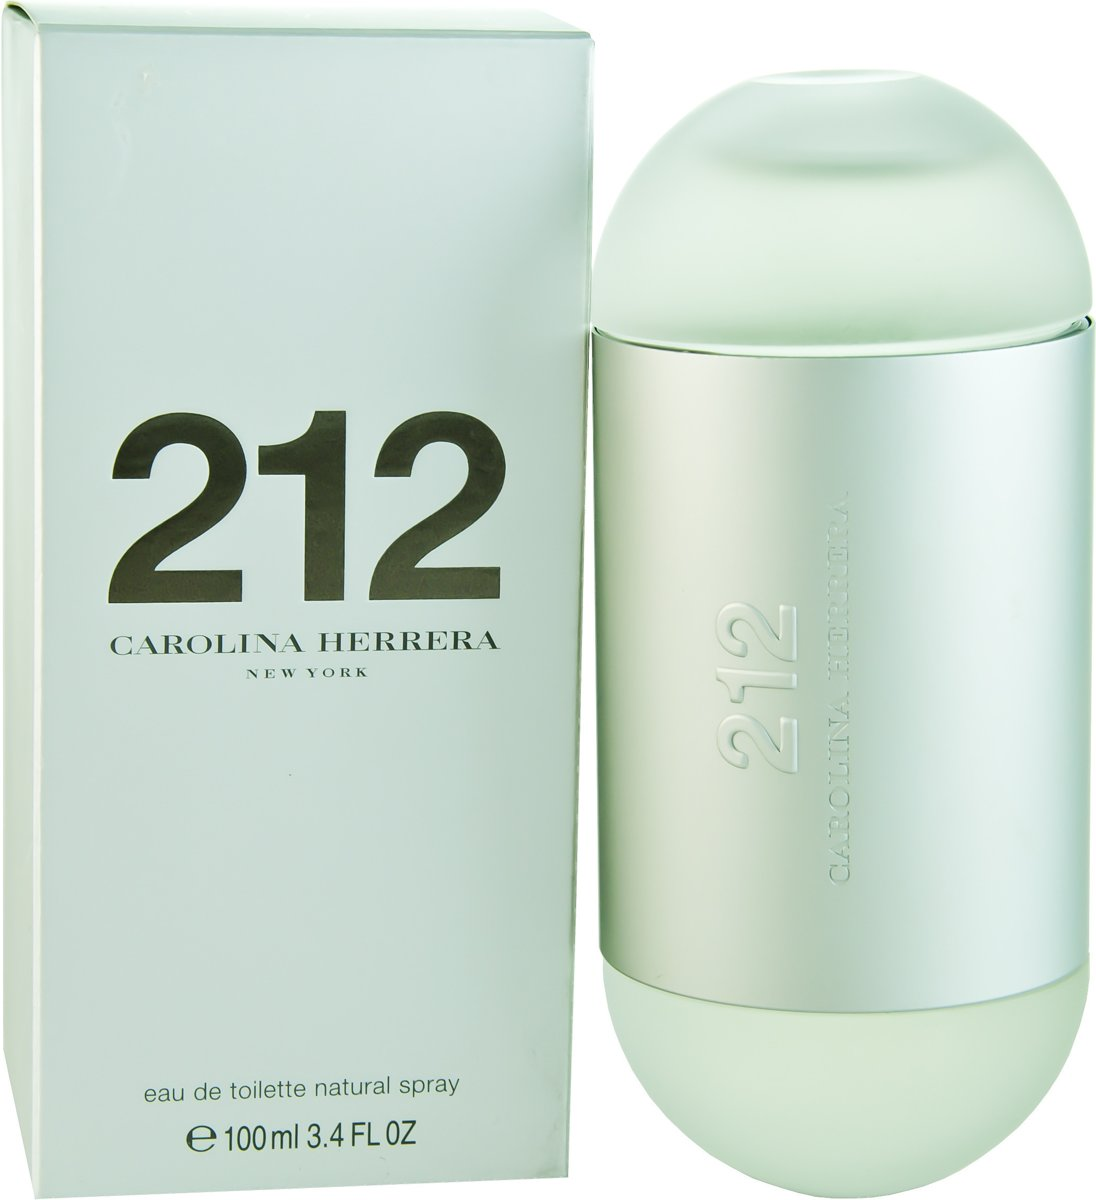 Carolina Herrera 212 Ladies 100 ml - Eau de toilette - for Women